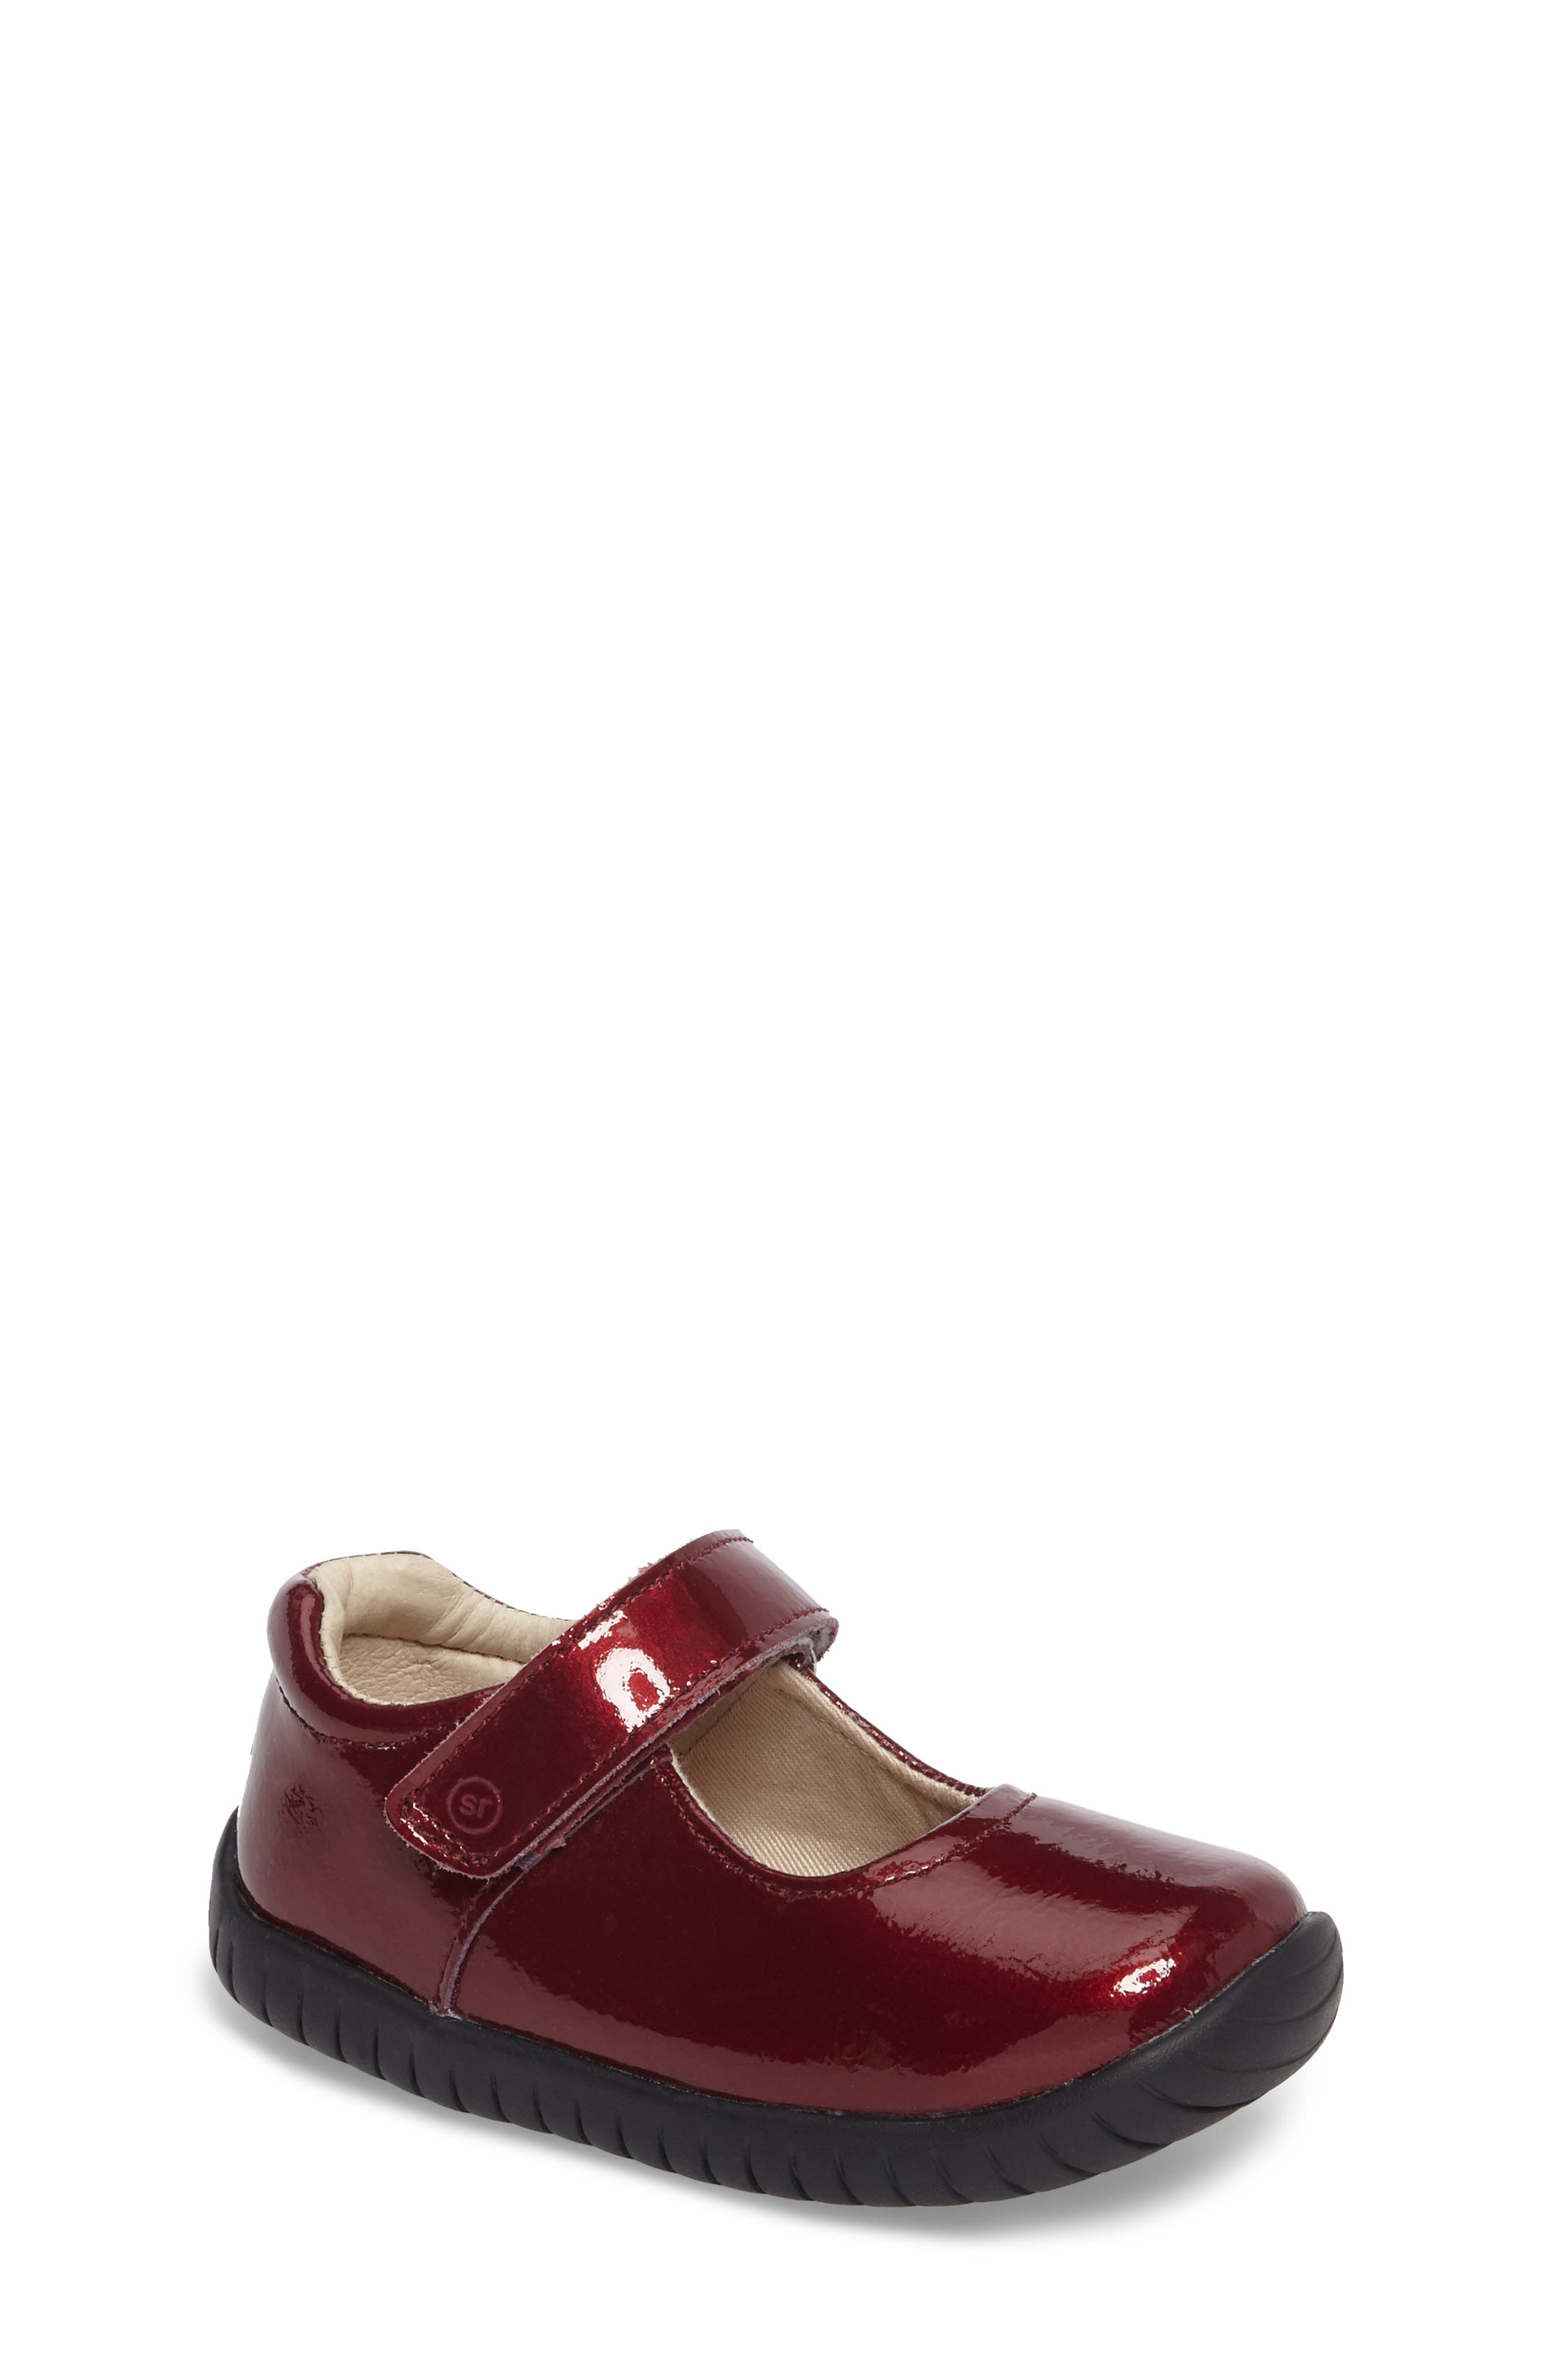 Maya Mary Jane Flat,                         Main,                         color, Burgundy Patent Leather